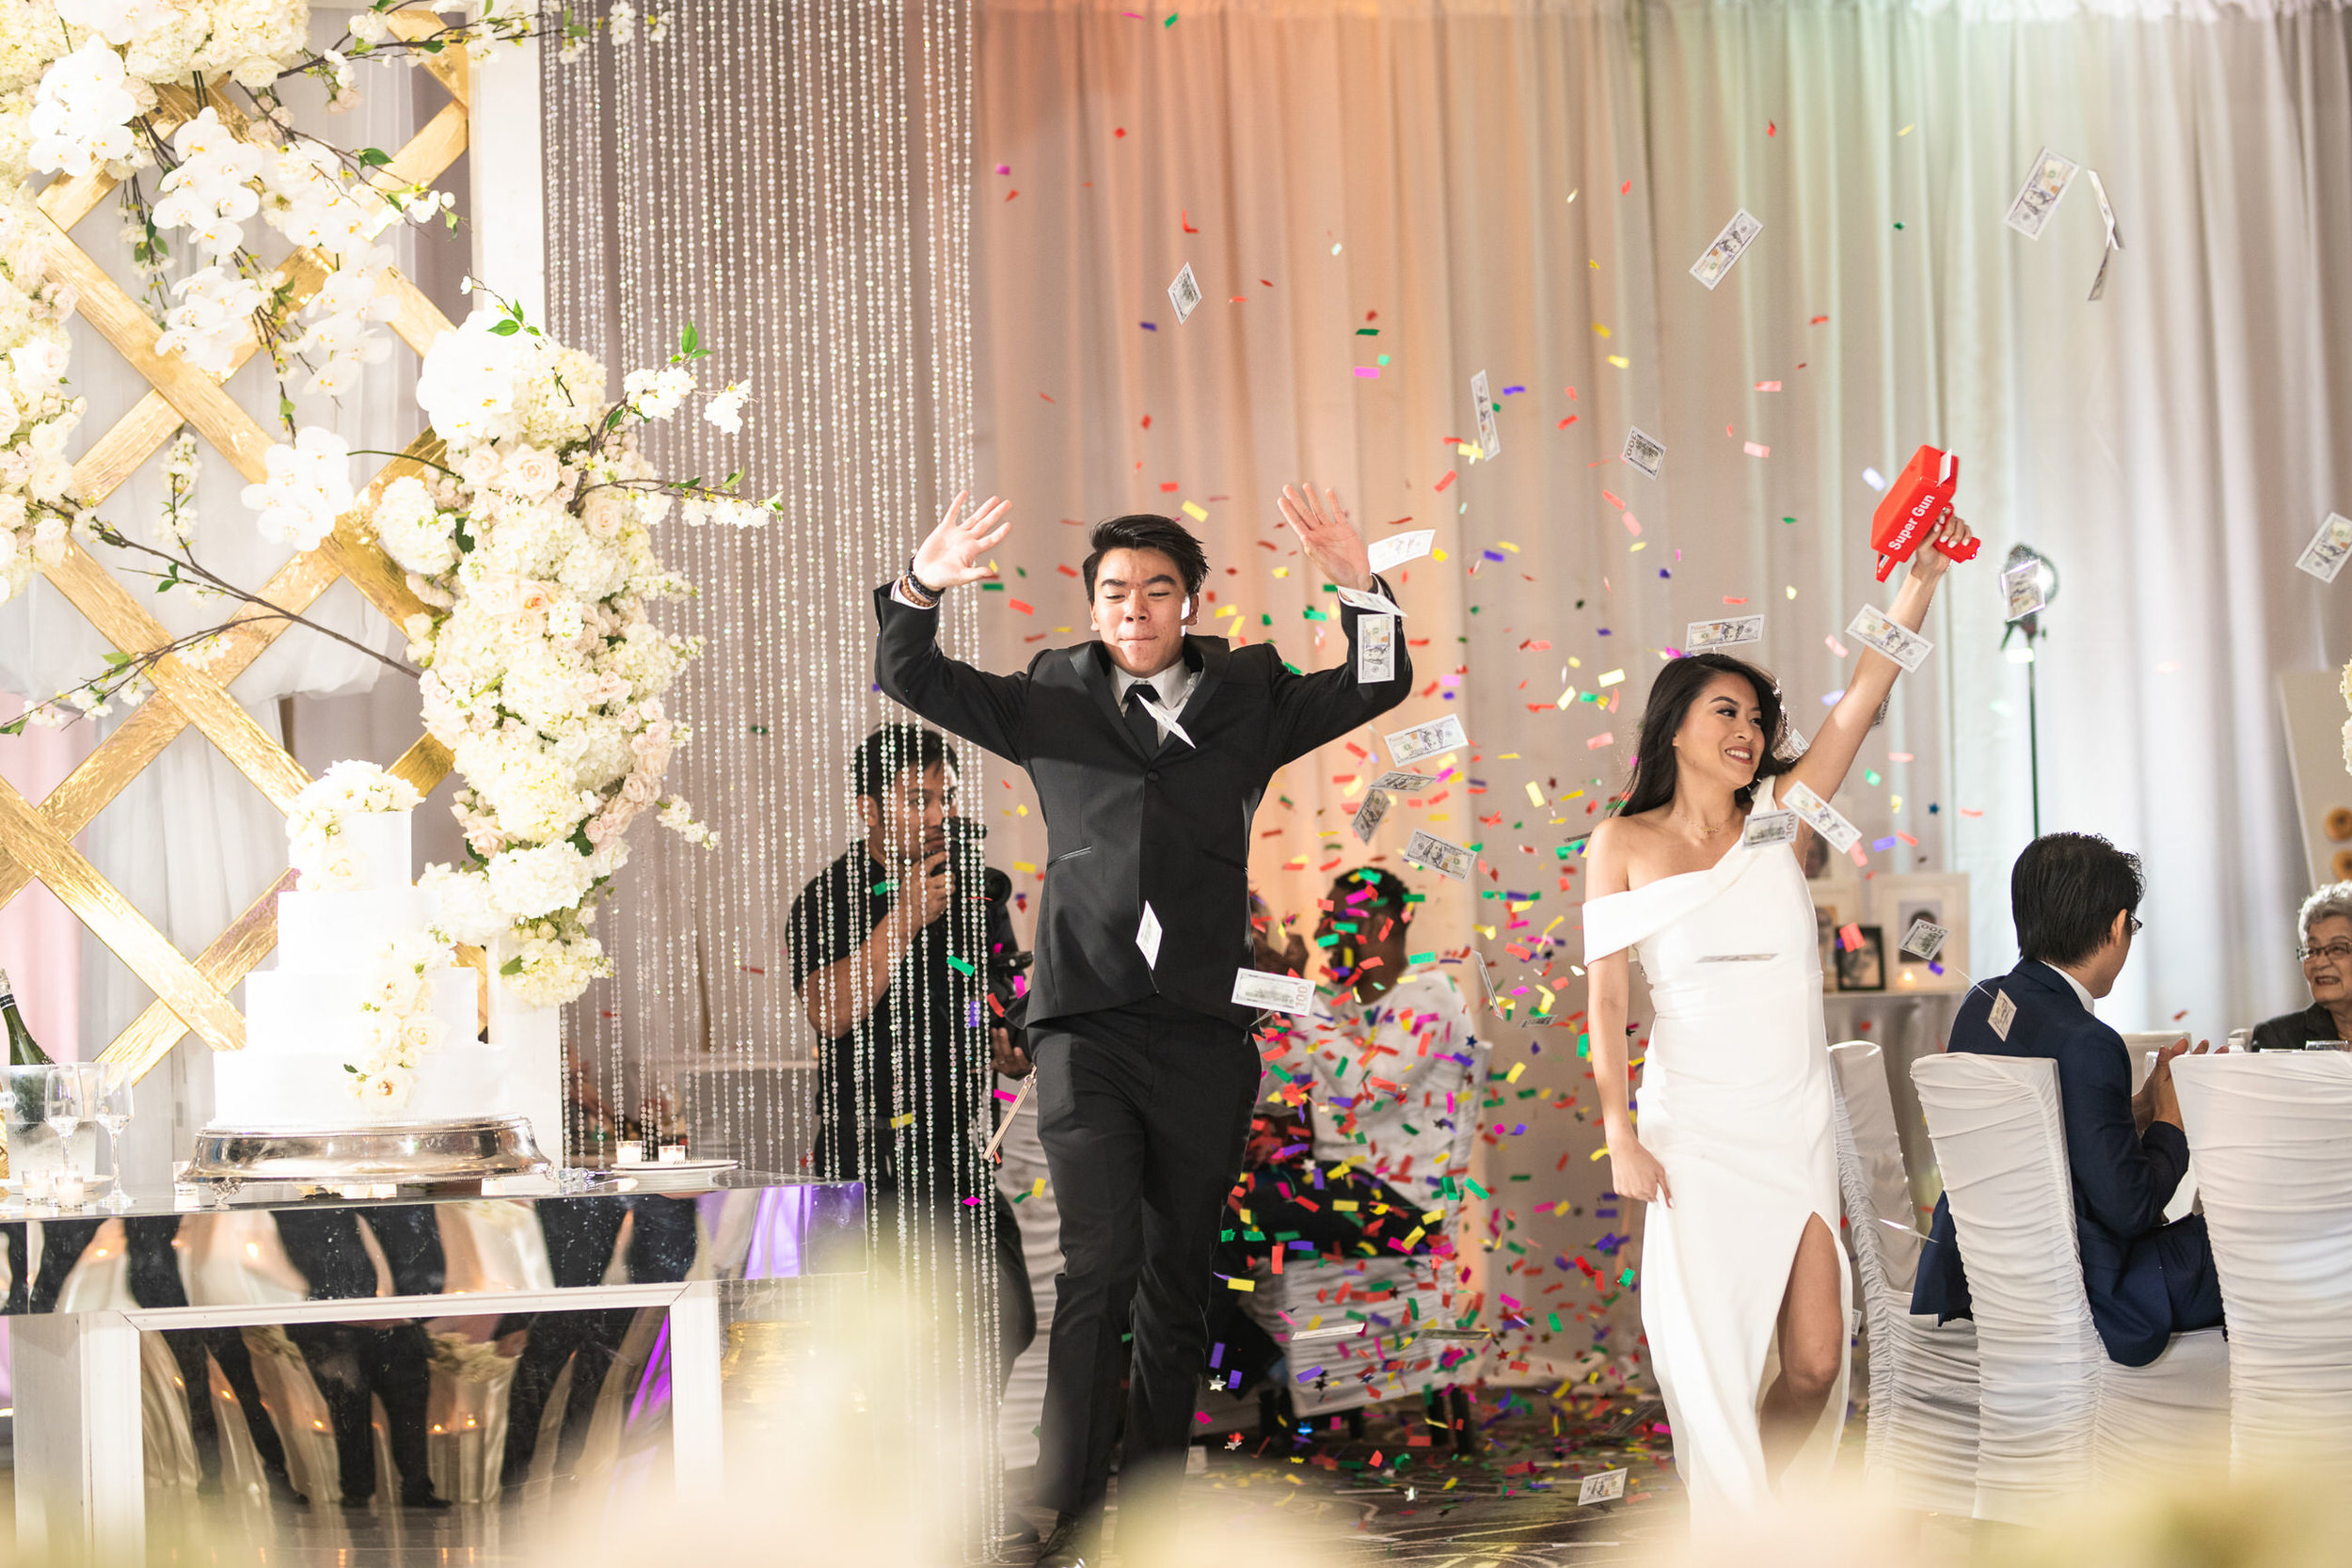 Dream_Wedding_Thanh_Thanh-2986.jpg